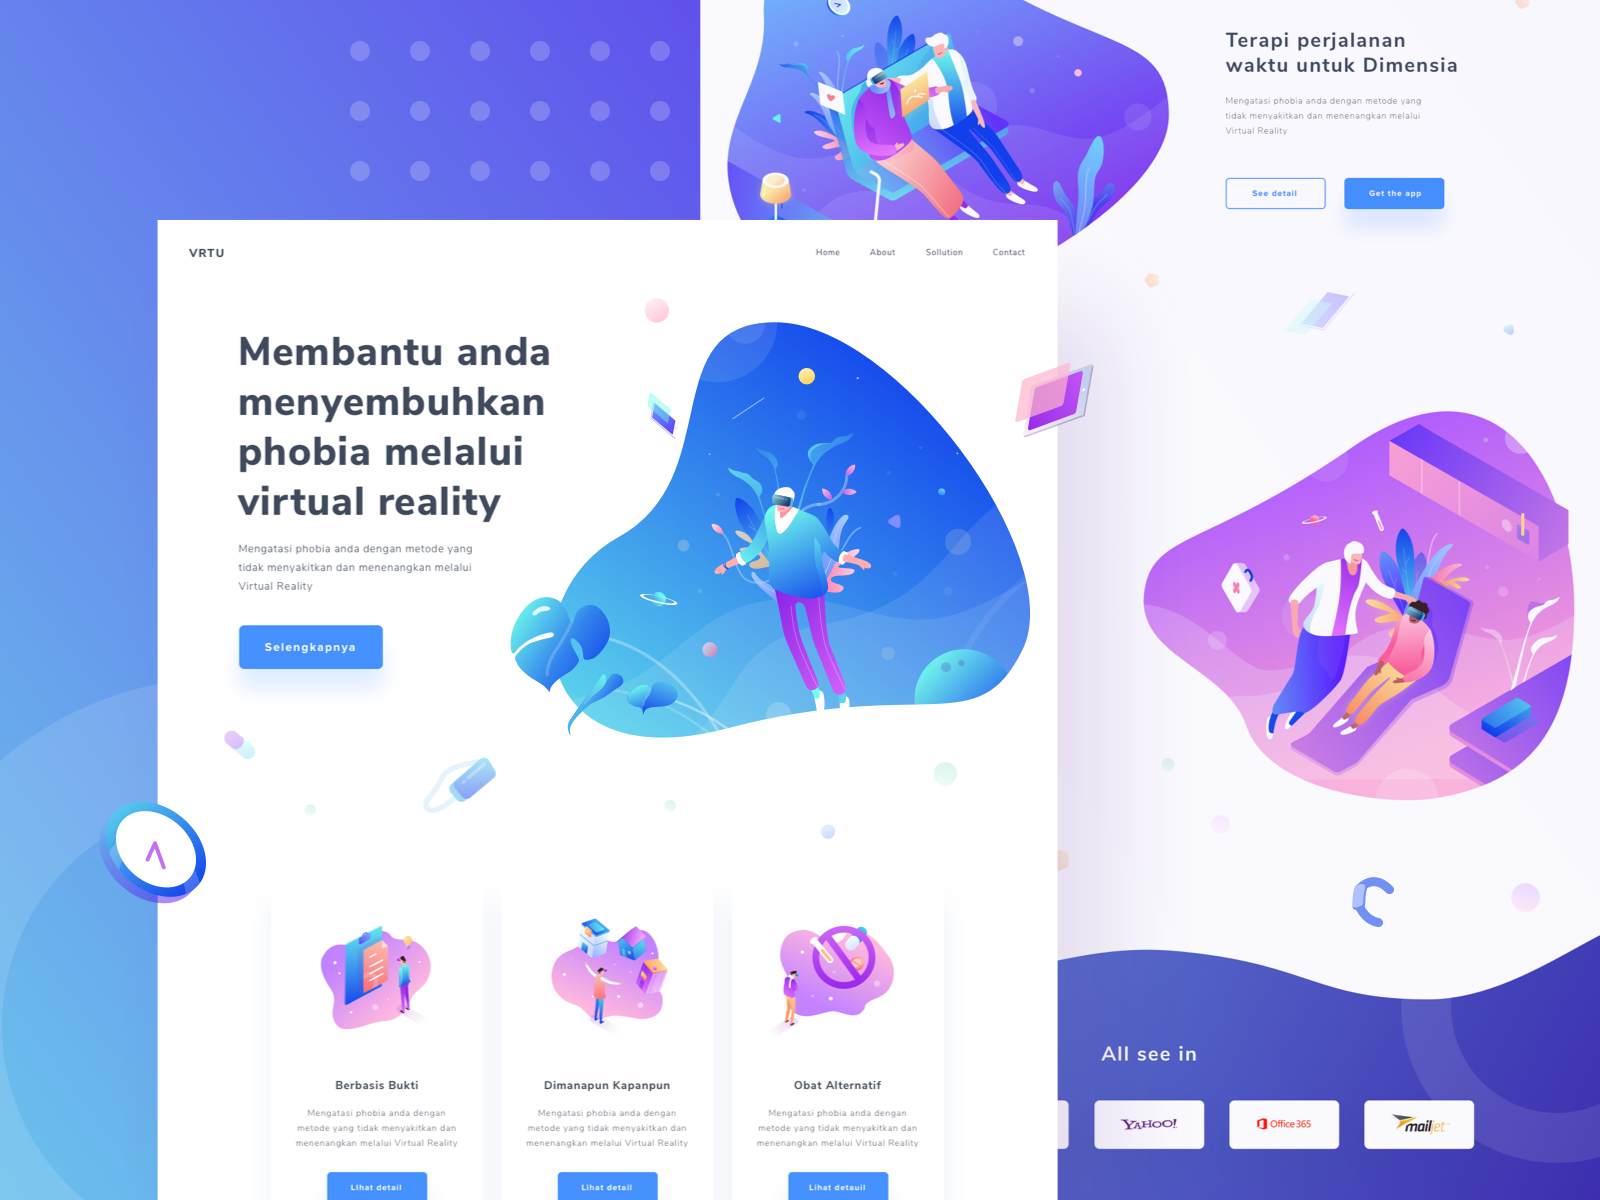 Virtu   dribbble   shot   3 4x